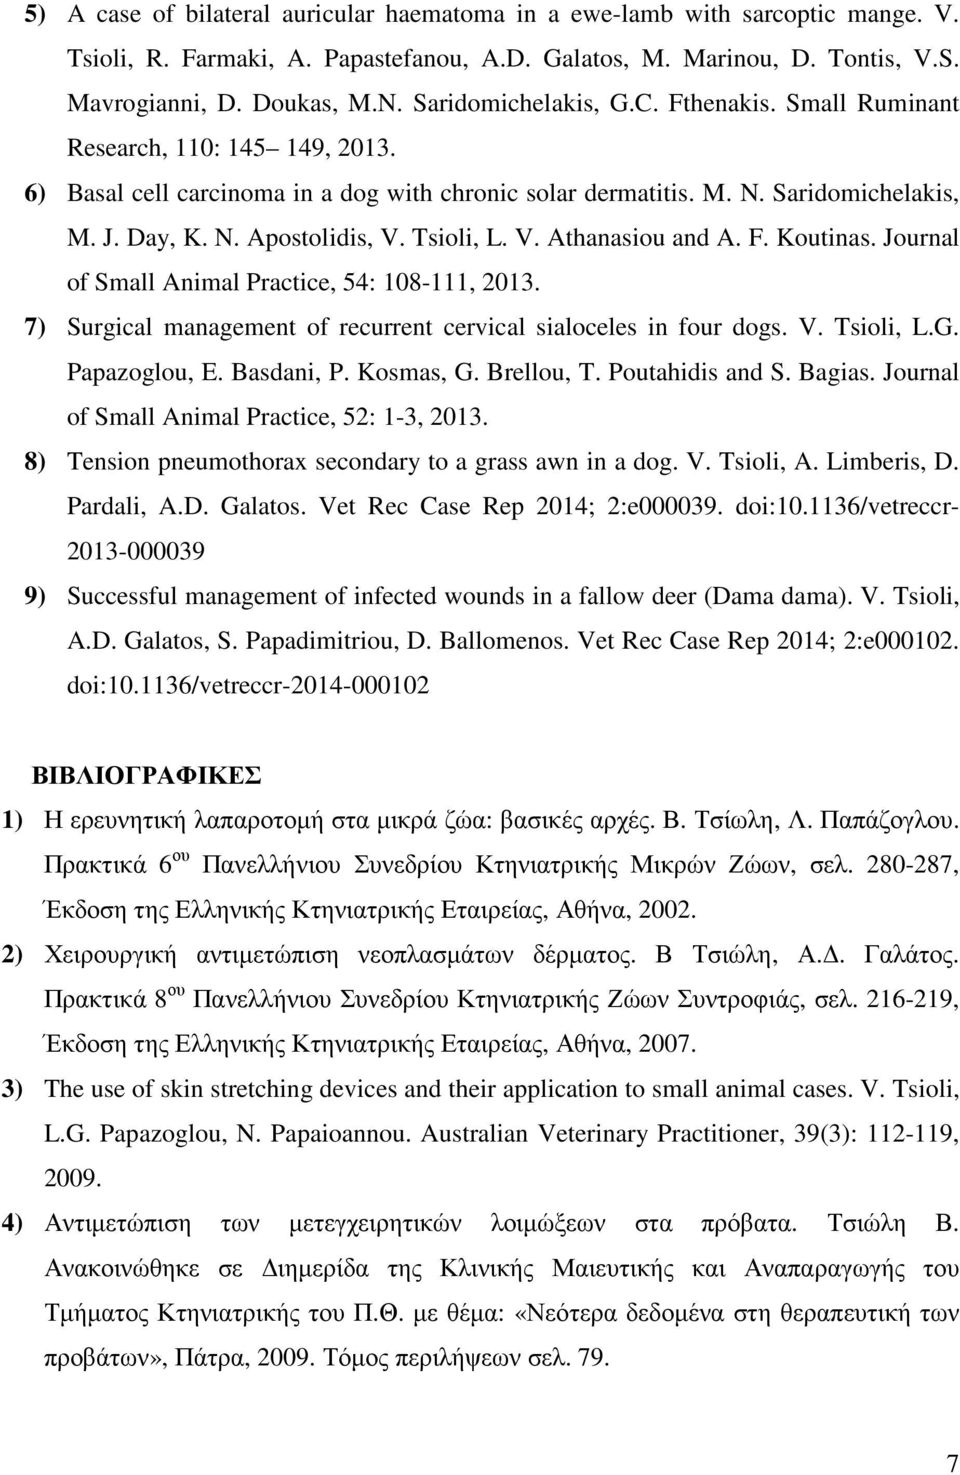 Tsioli, L. V. Athanasiou and A. F. Koutinas. Journal of Small Animal Practice, 54: 108-111, 2013. 7) Surgical management of recurrent cervical sialoceles in four dogs. V. Tsioli, L.G. Papazoglou, E.